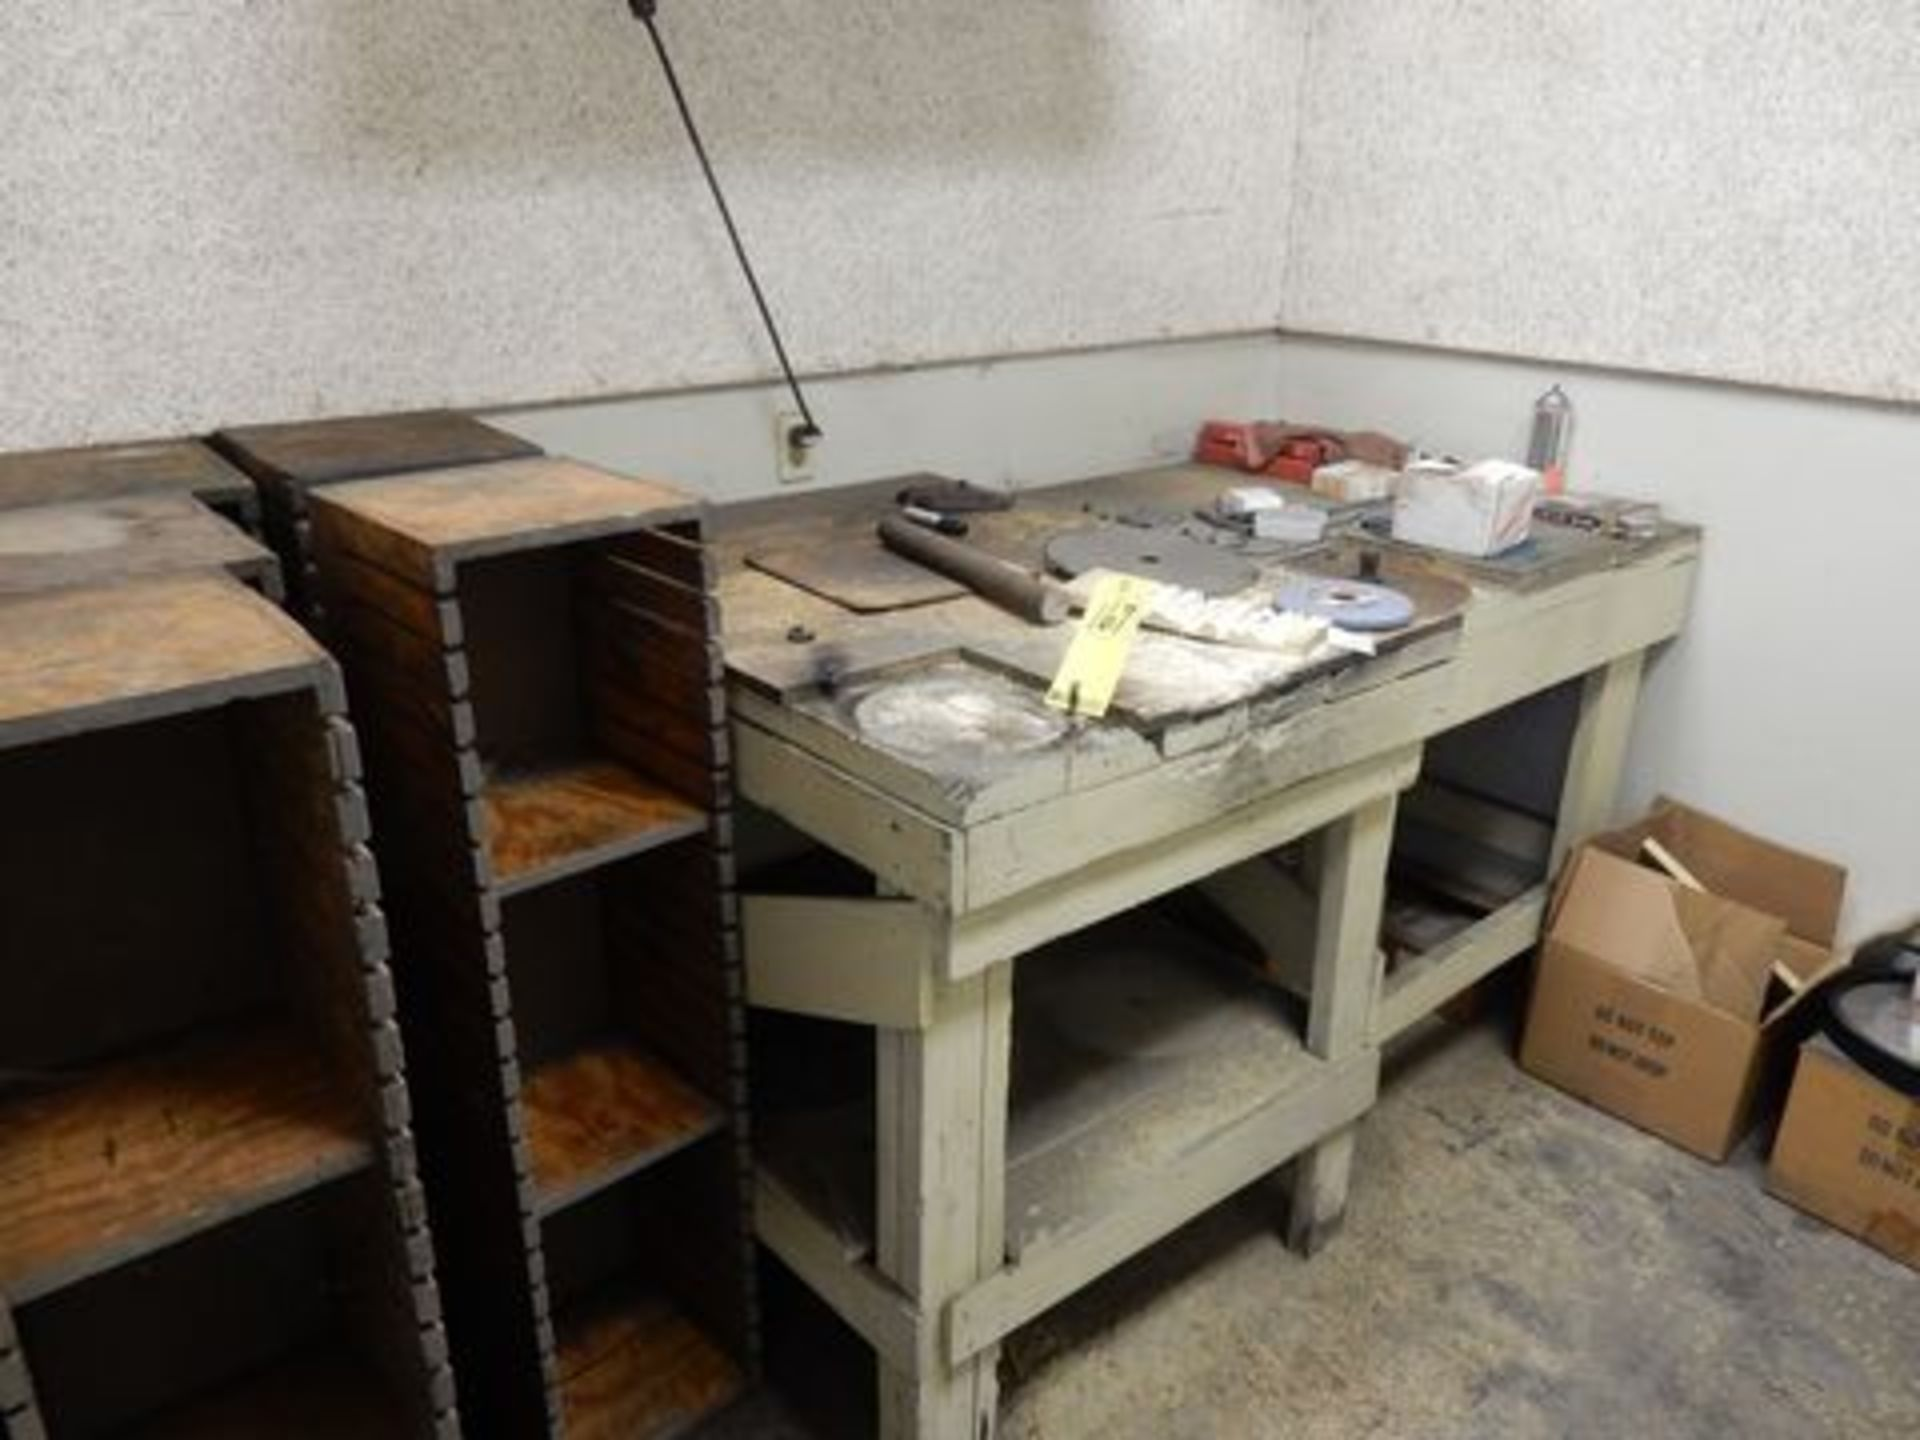 Lot 167 - CONTENTS OF OFFICE TO INCLUDE WOOD TABLES, METAL BOOKSHELF